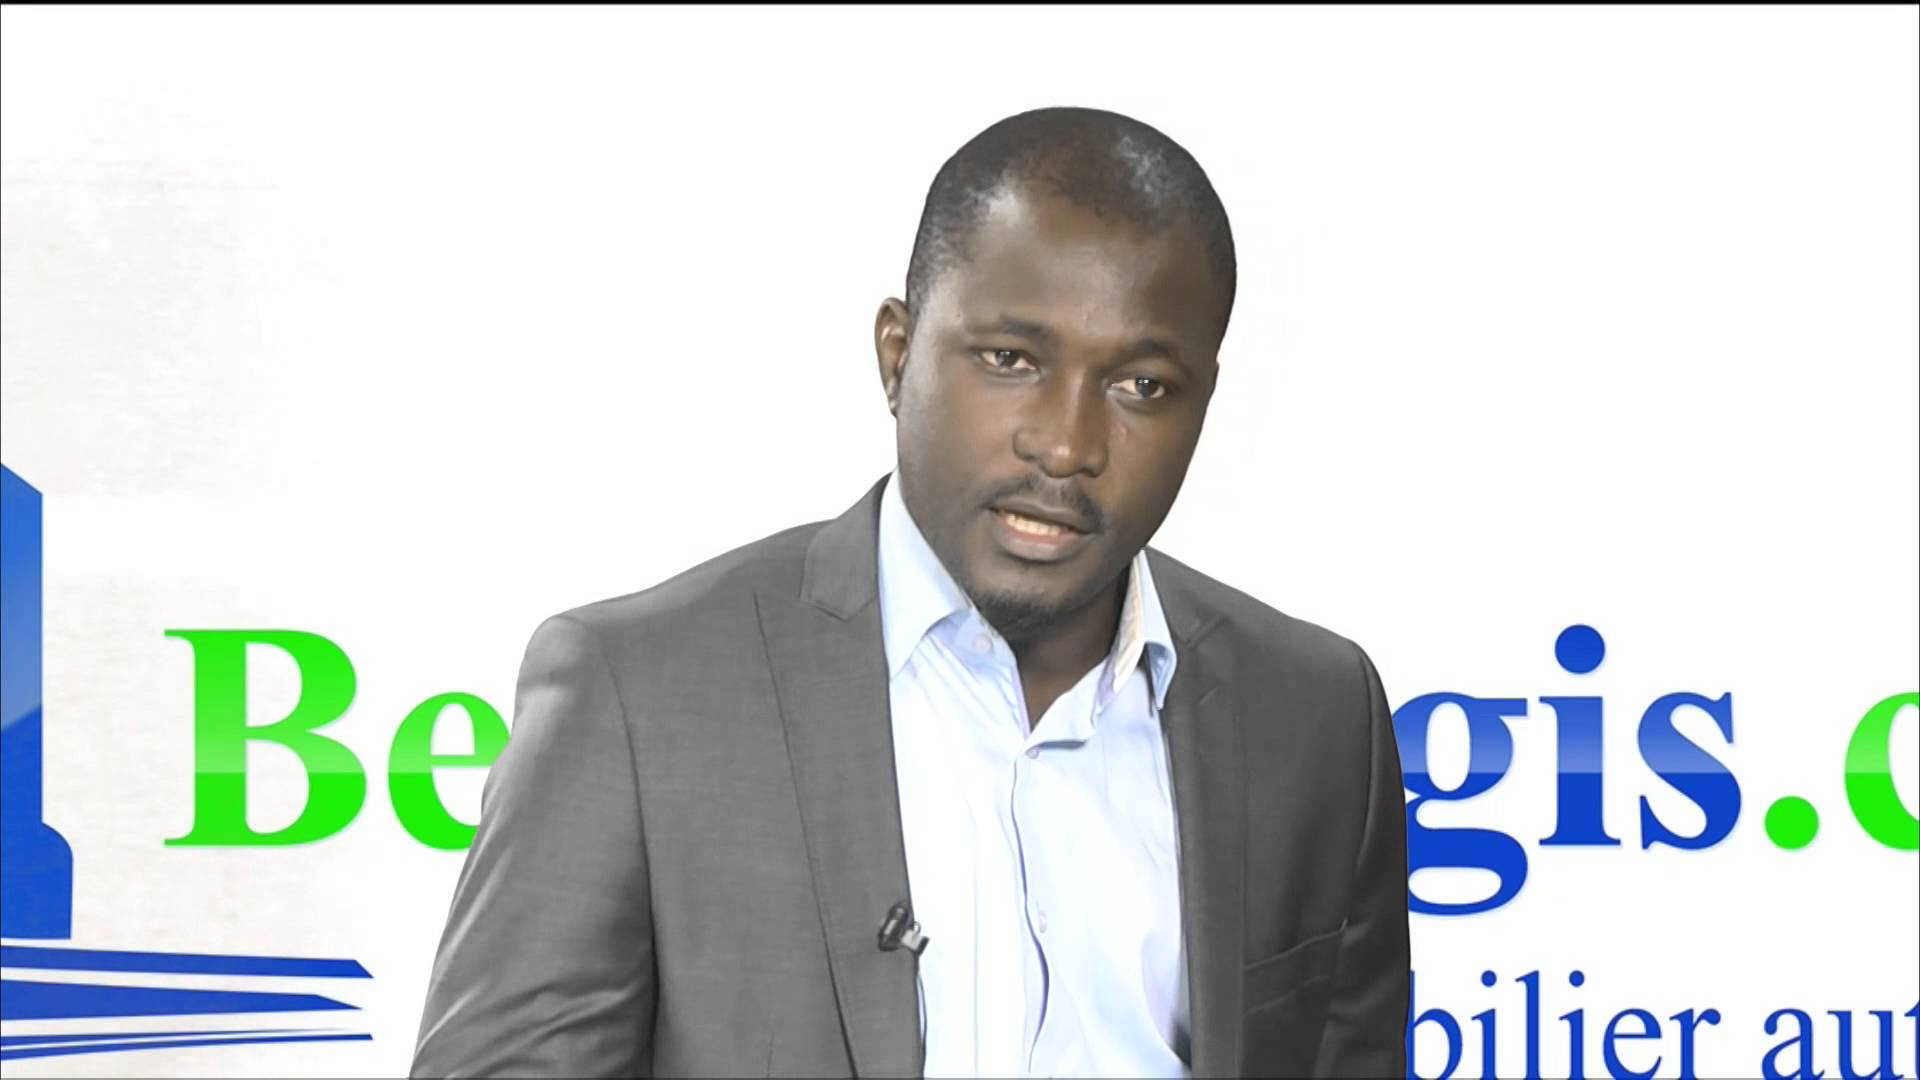 Meet Mathus Lawson, using Geolocation to improve access in Benin